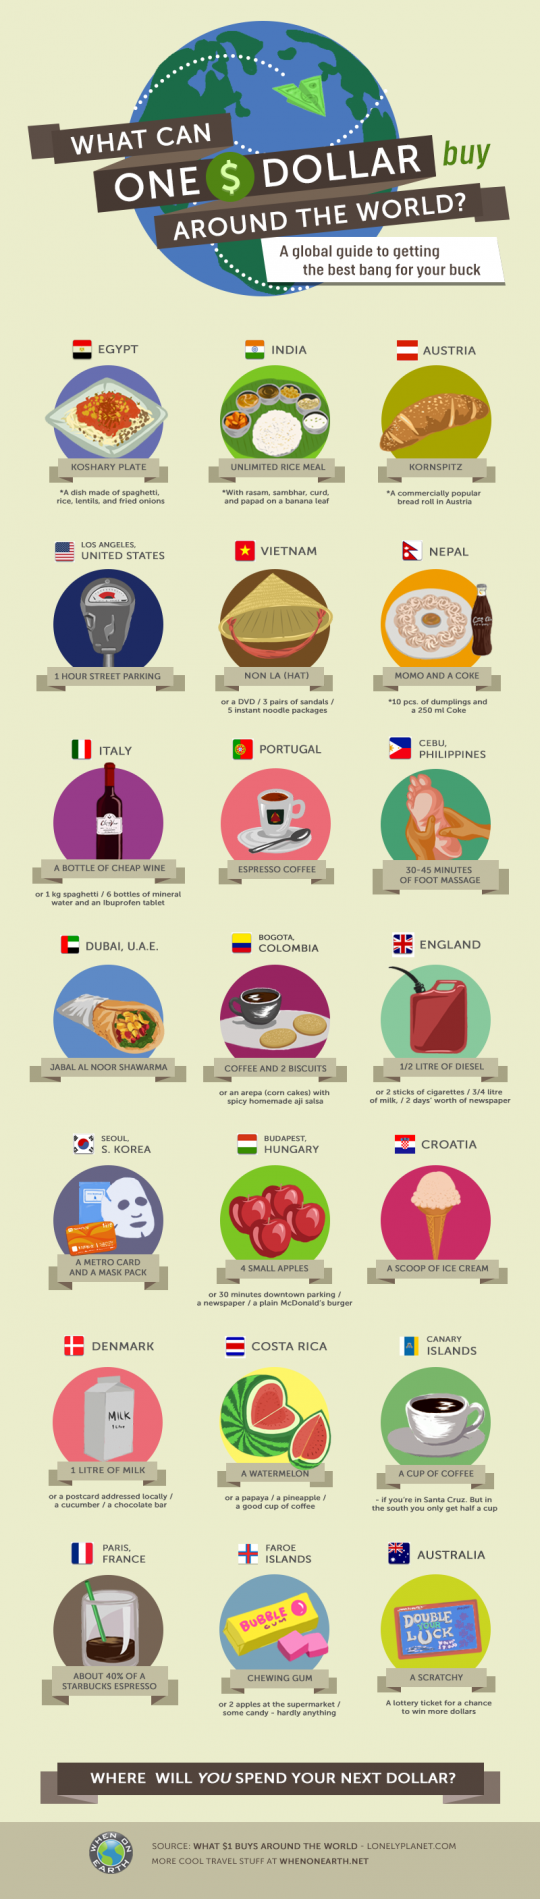 What can $1 buy around the world?